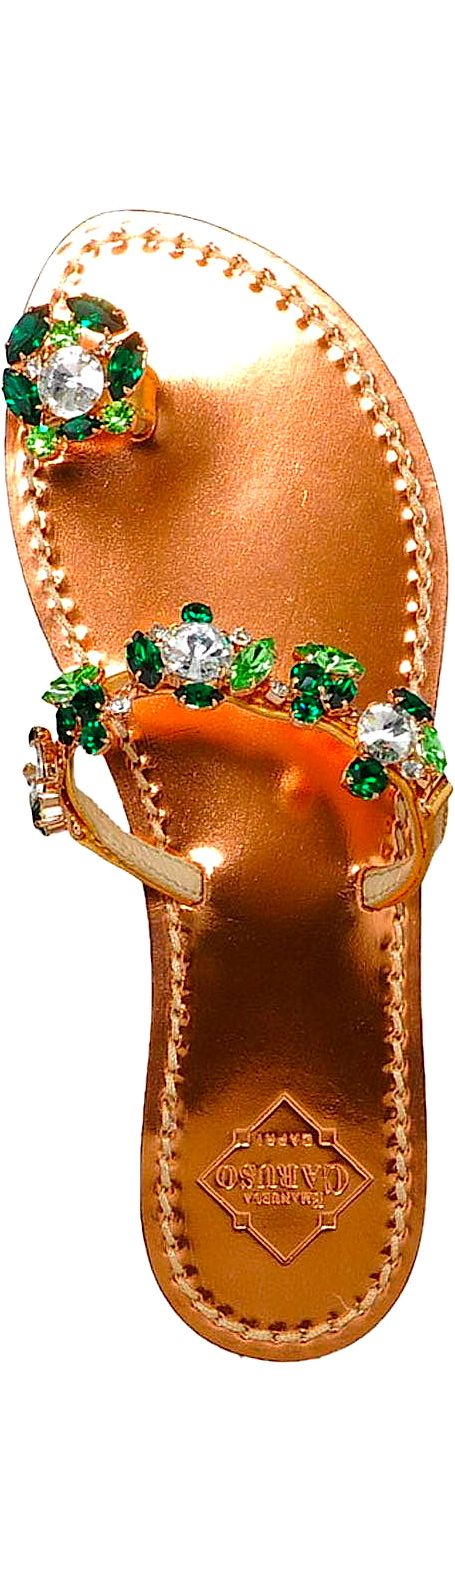 Bejeweled and Gorgeous!                                                                                                                                                                                 More